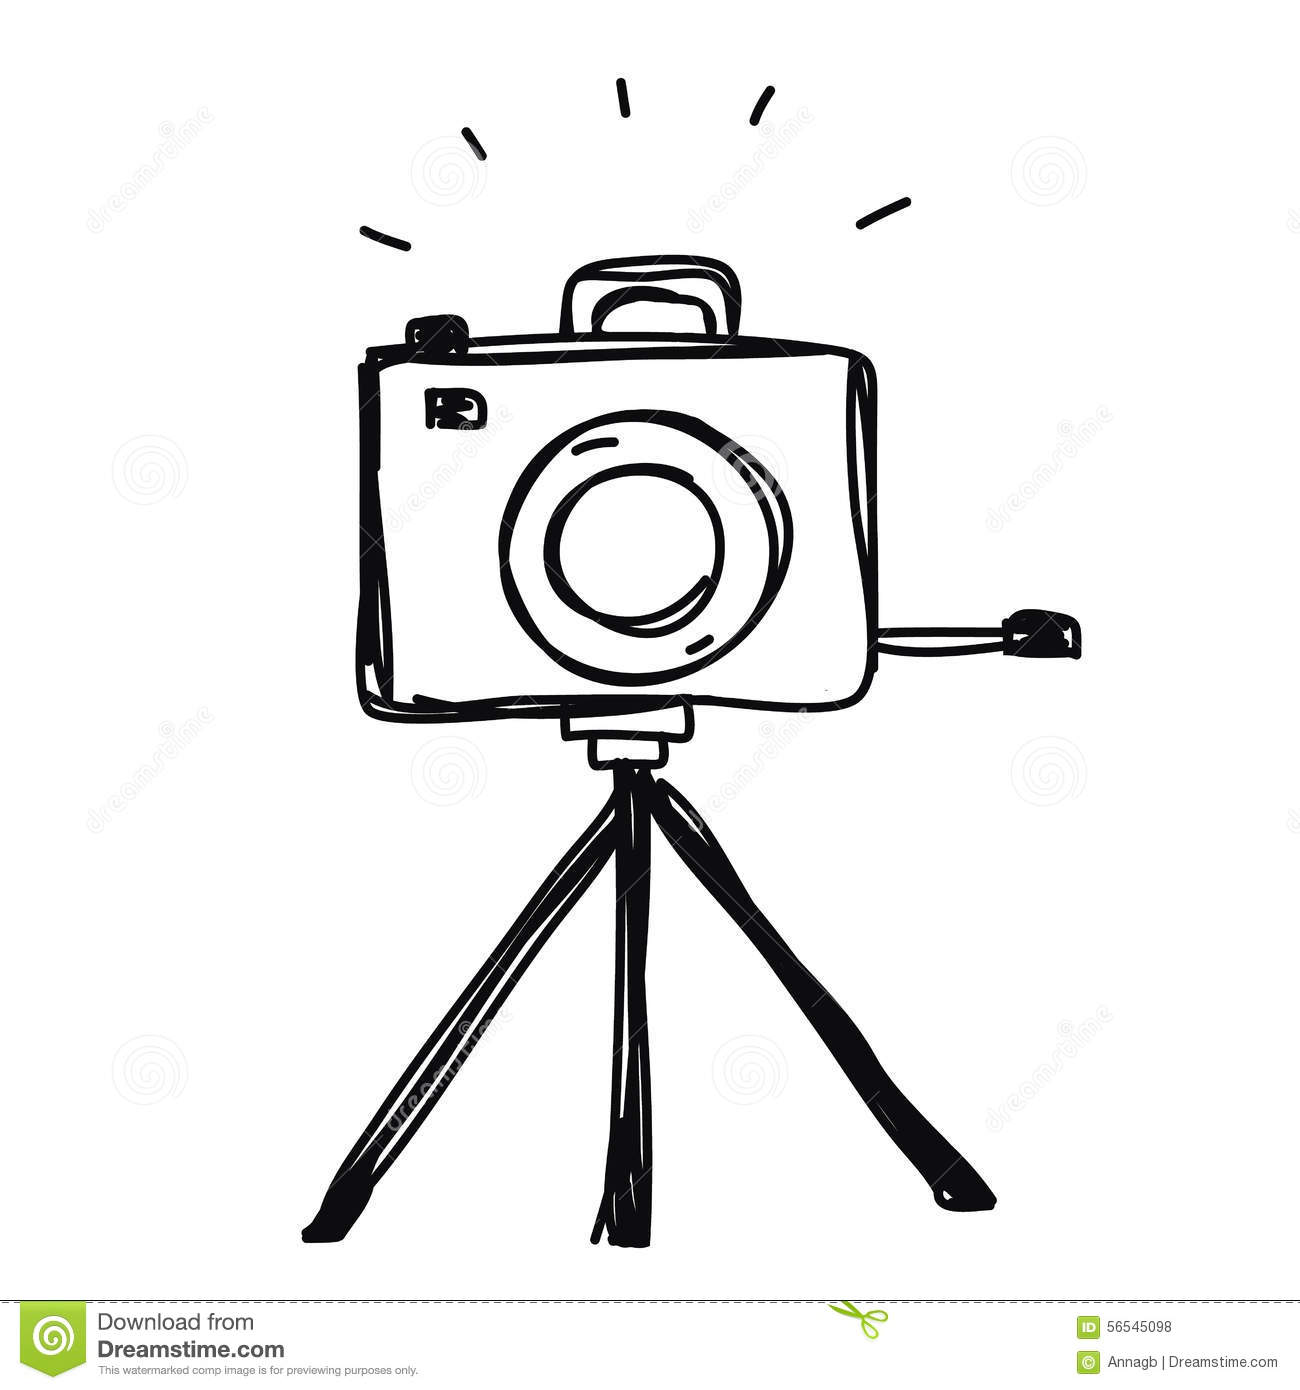 534098837030136097 as well Elegant Page Border furthermore Stock Illustration Camera Tripod Hand Drawn Vector Black Image56545098 together with Tall Vintage Real Leather Metal Work Bar Stool 32 Inch also Transparent Crown. on antique lights